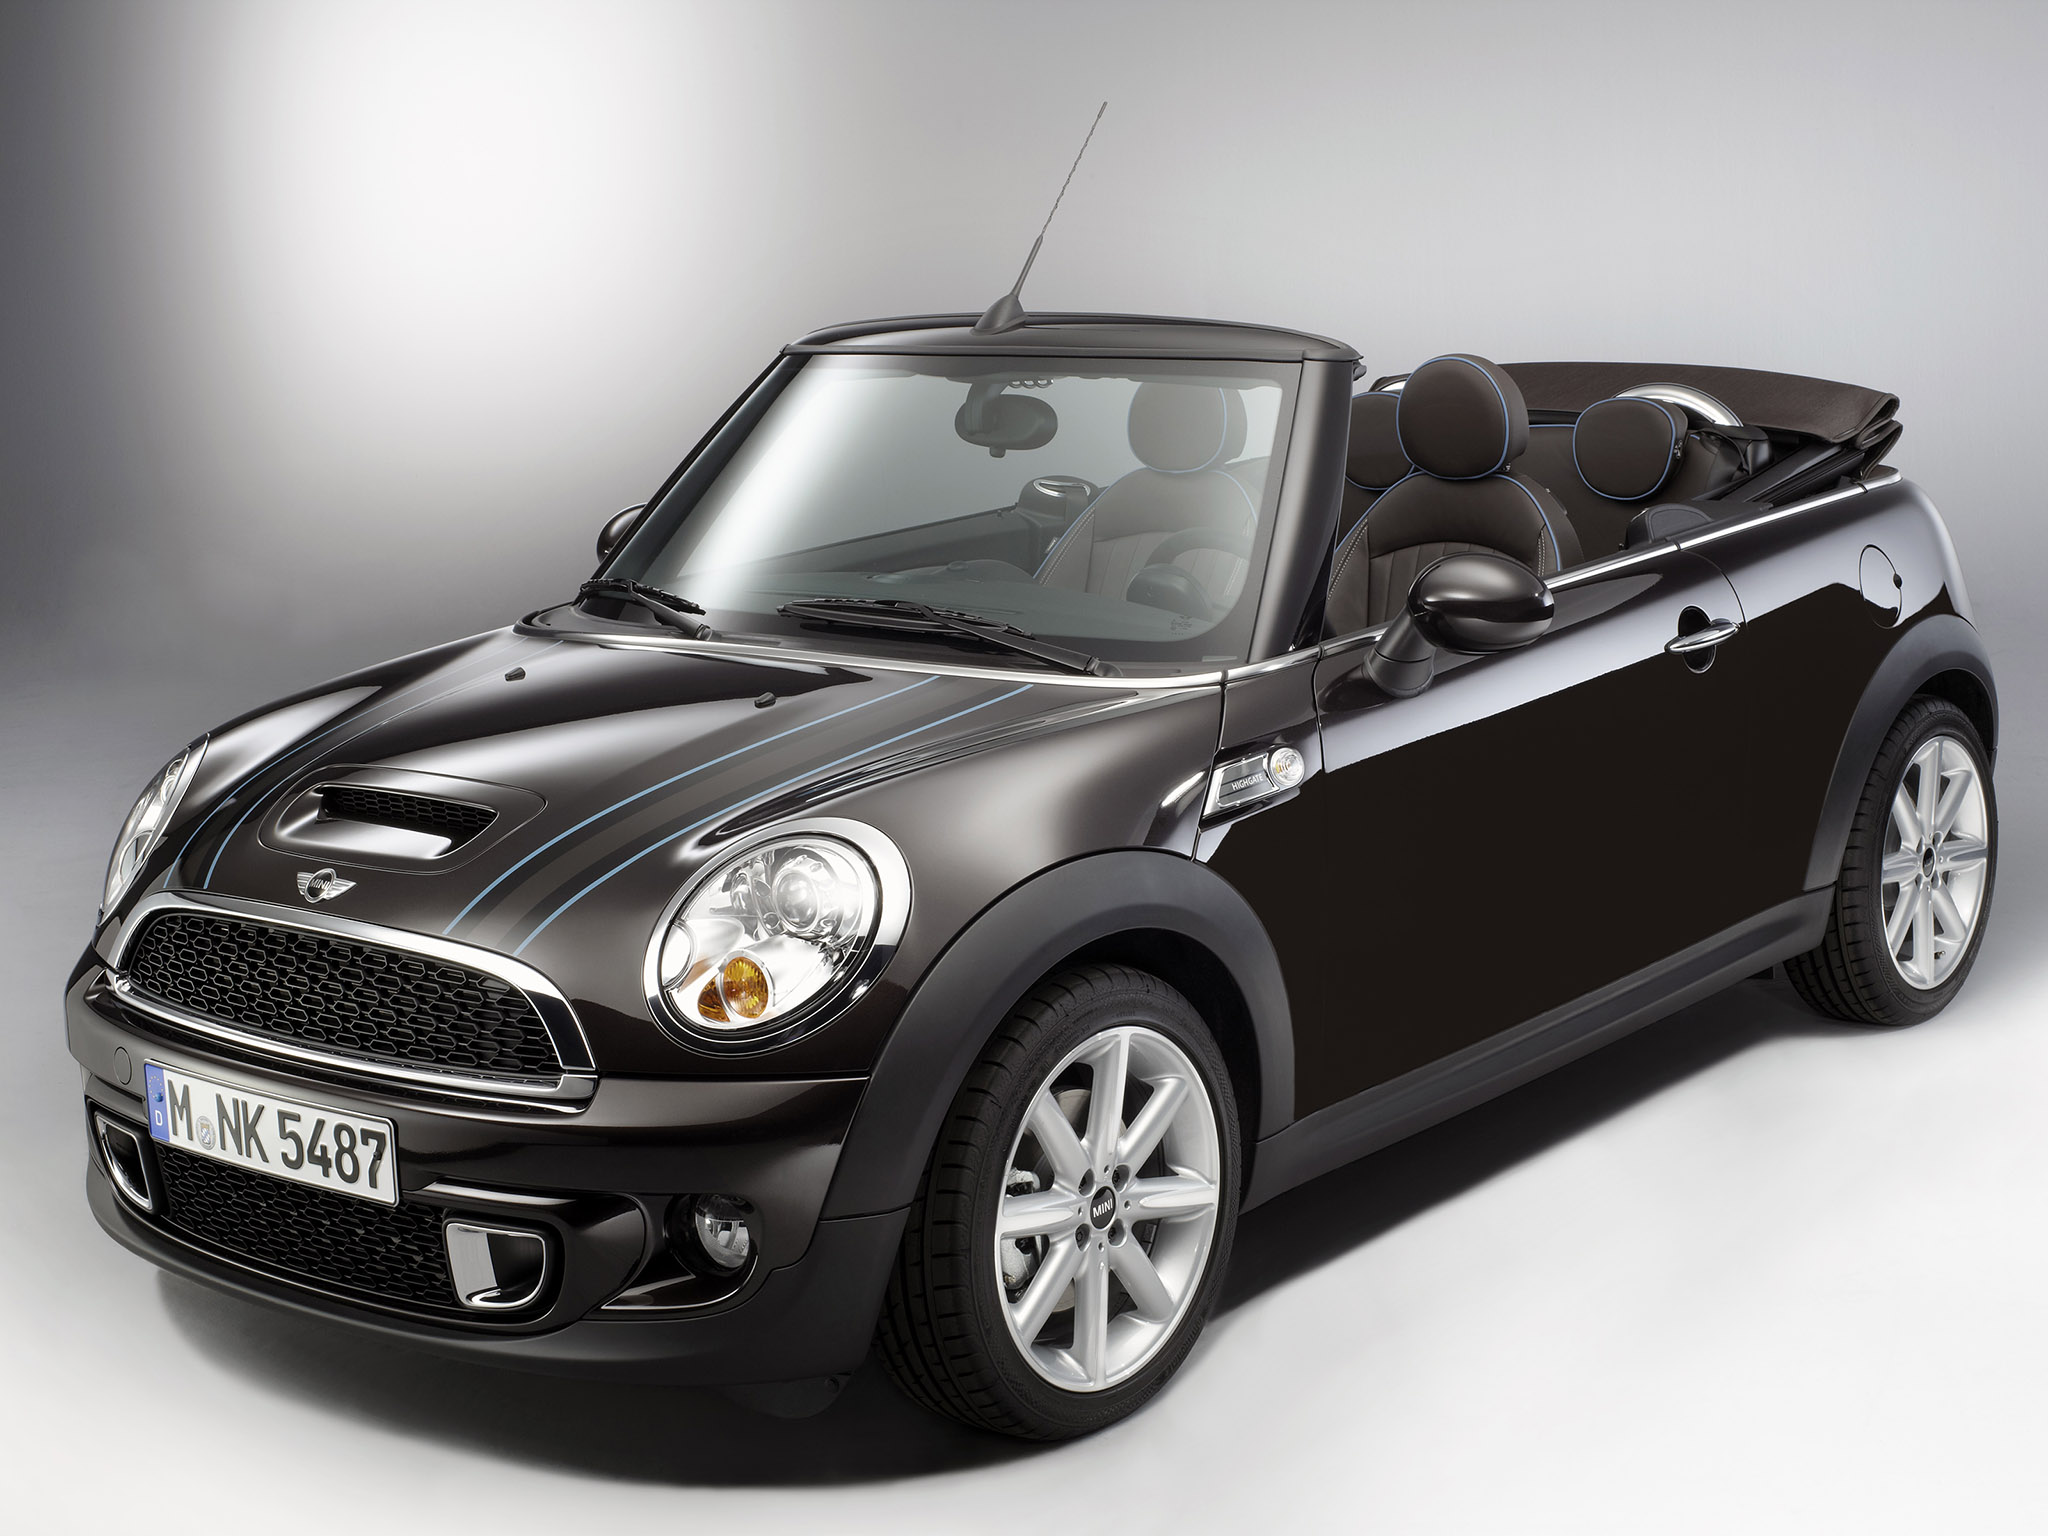 mini cooper s cabrio highgate 2012 mini cooper s cabrio highgate 2012 photo 06 car in pictures. Black Bedroom Furniture Sets. Home Design Ideas